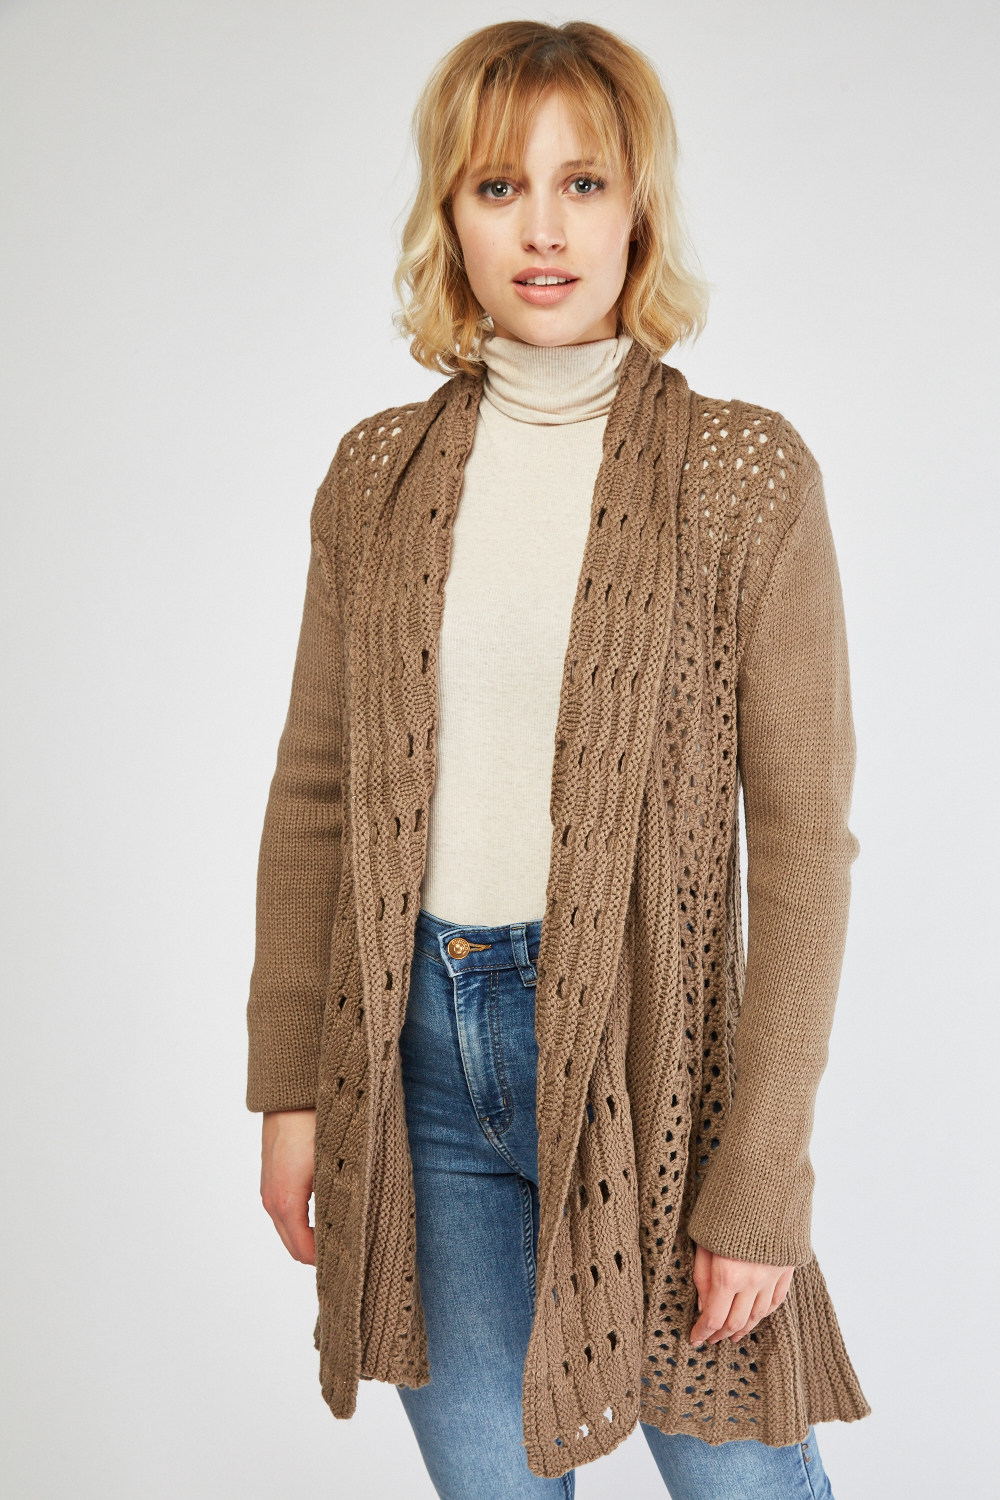 Loose Knit Open Cardigan - Just $3